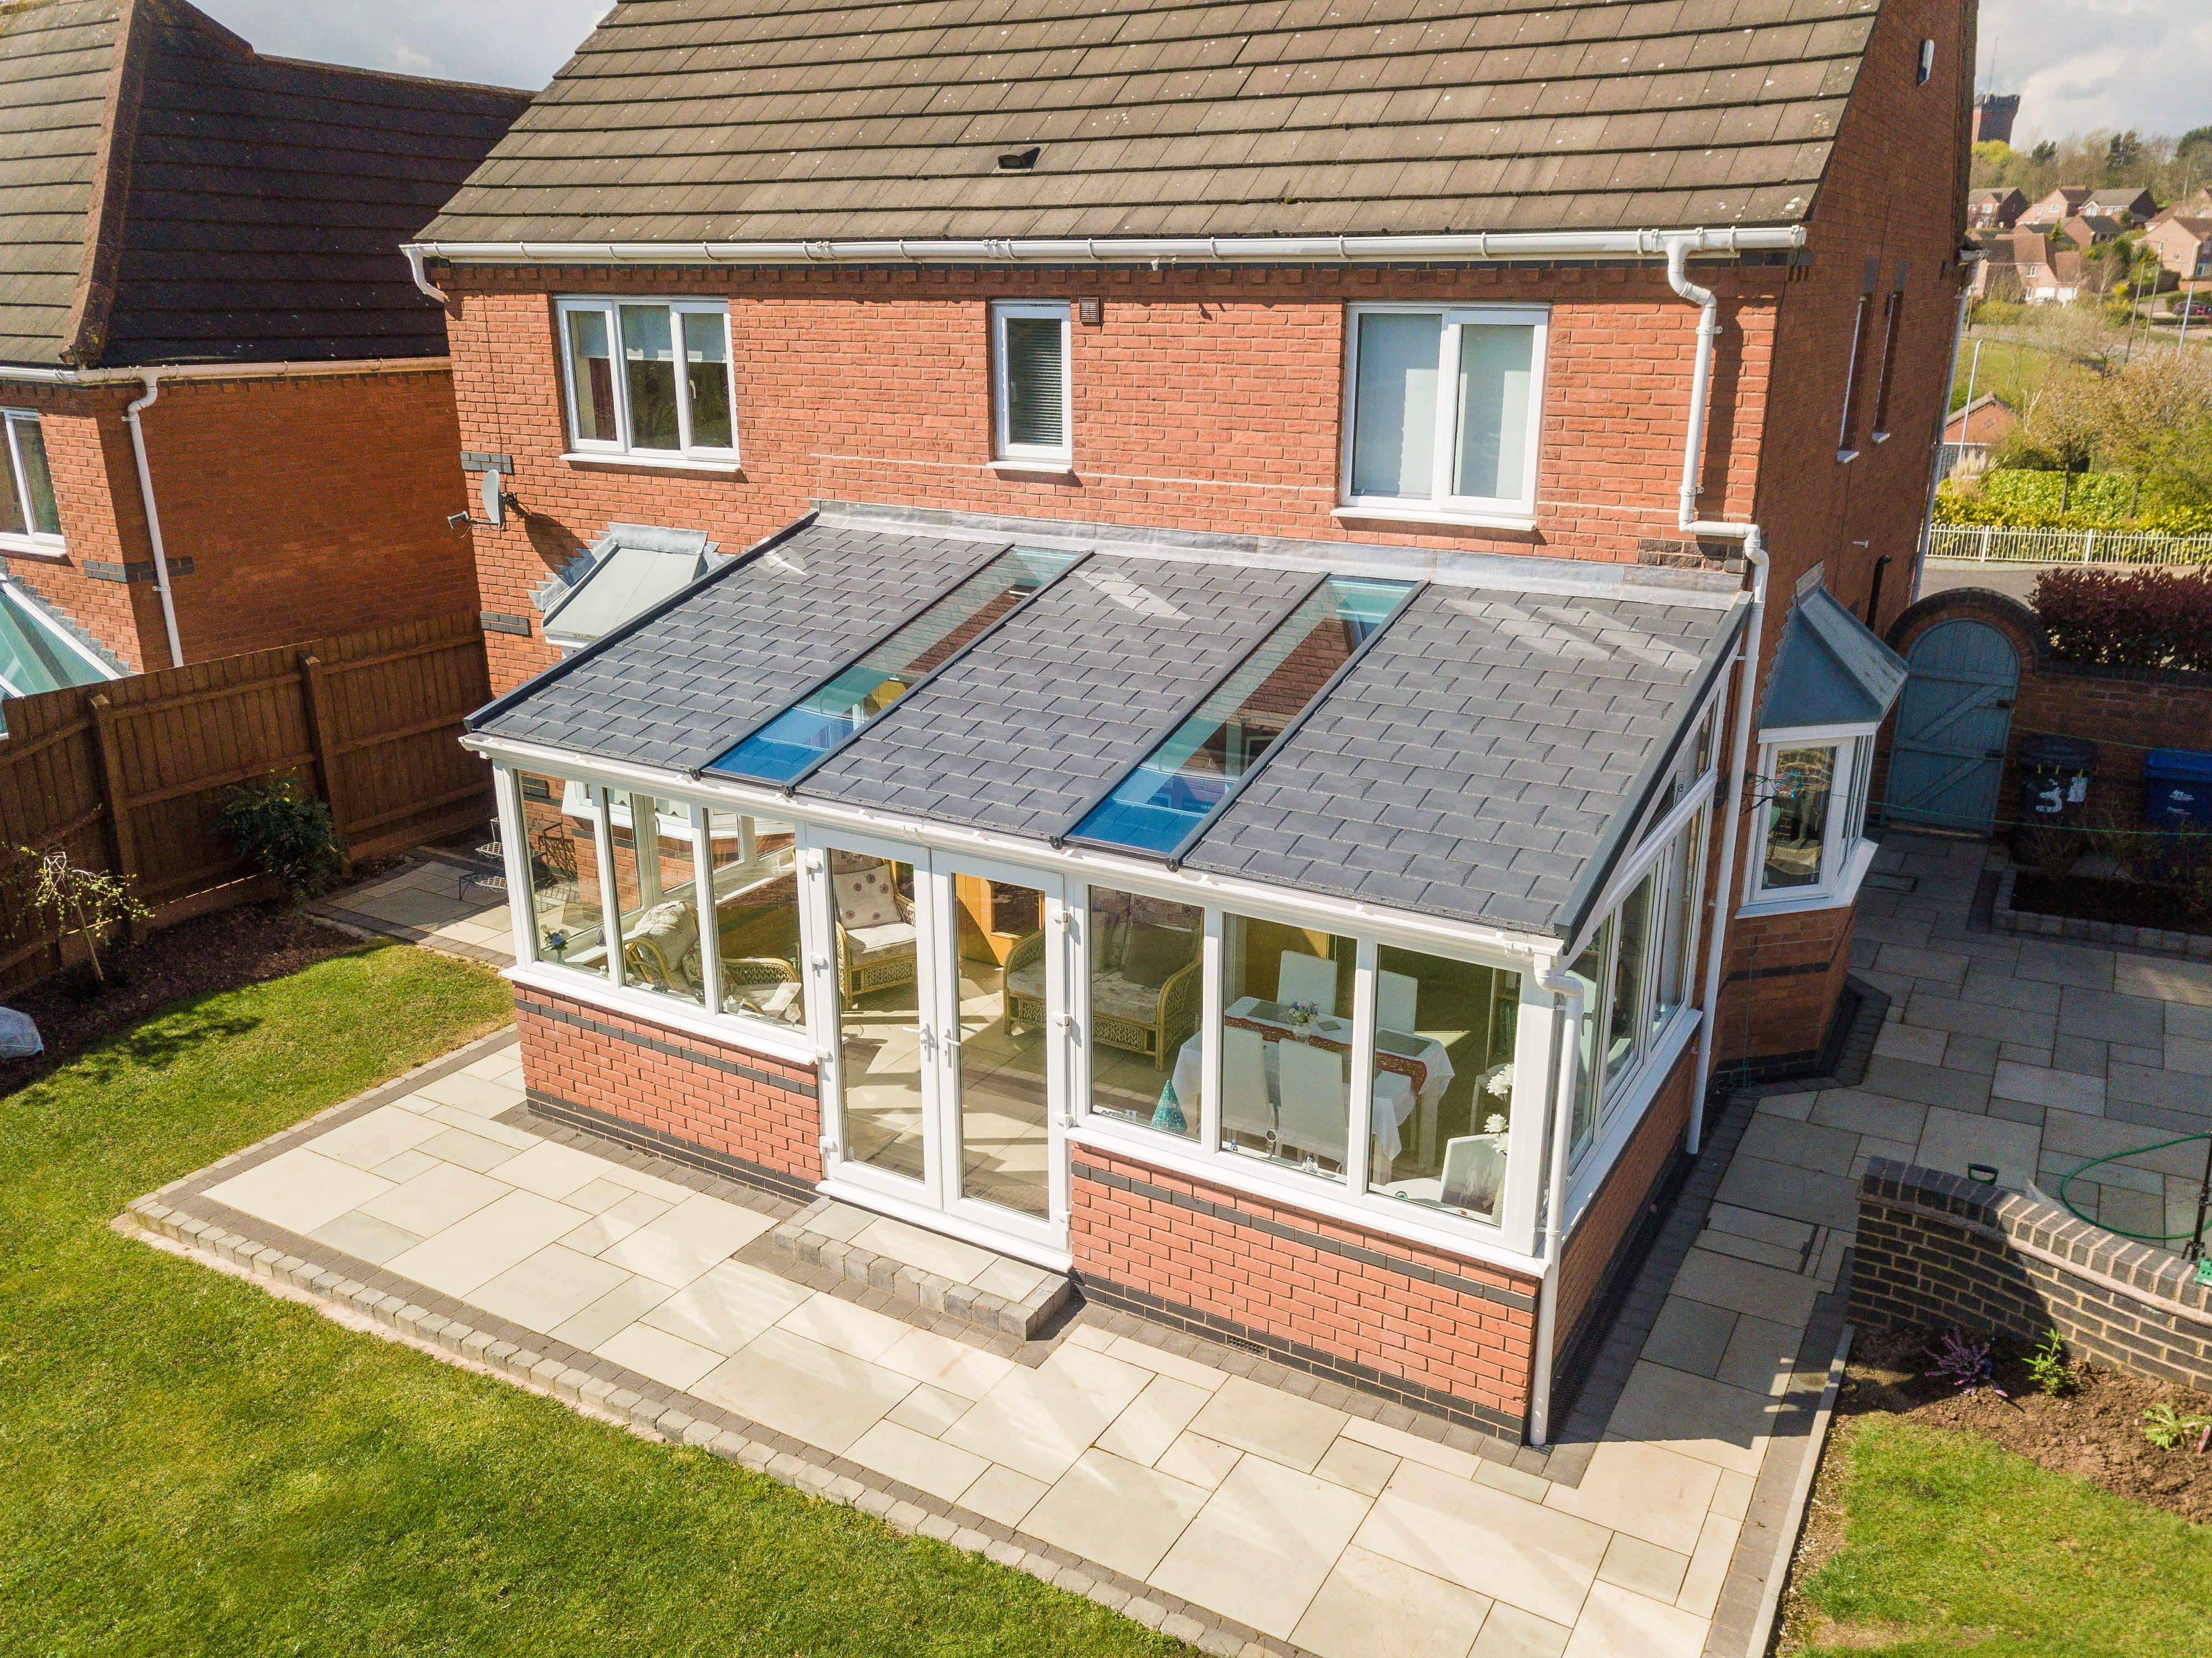 Tiled Conservatory Roof Replacement Prices In 2020 Tiled Conservatory Roof Replacement Conservatory Roof Conservatory Roof